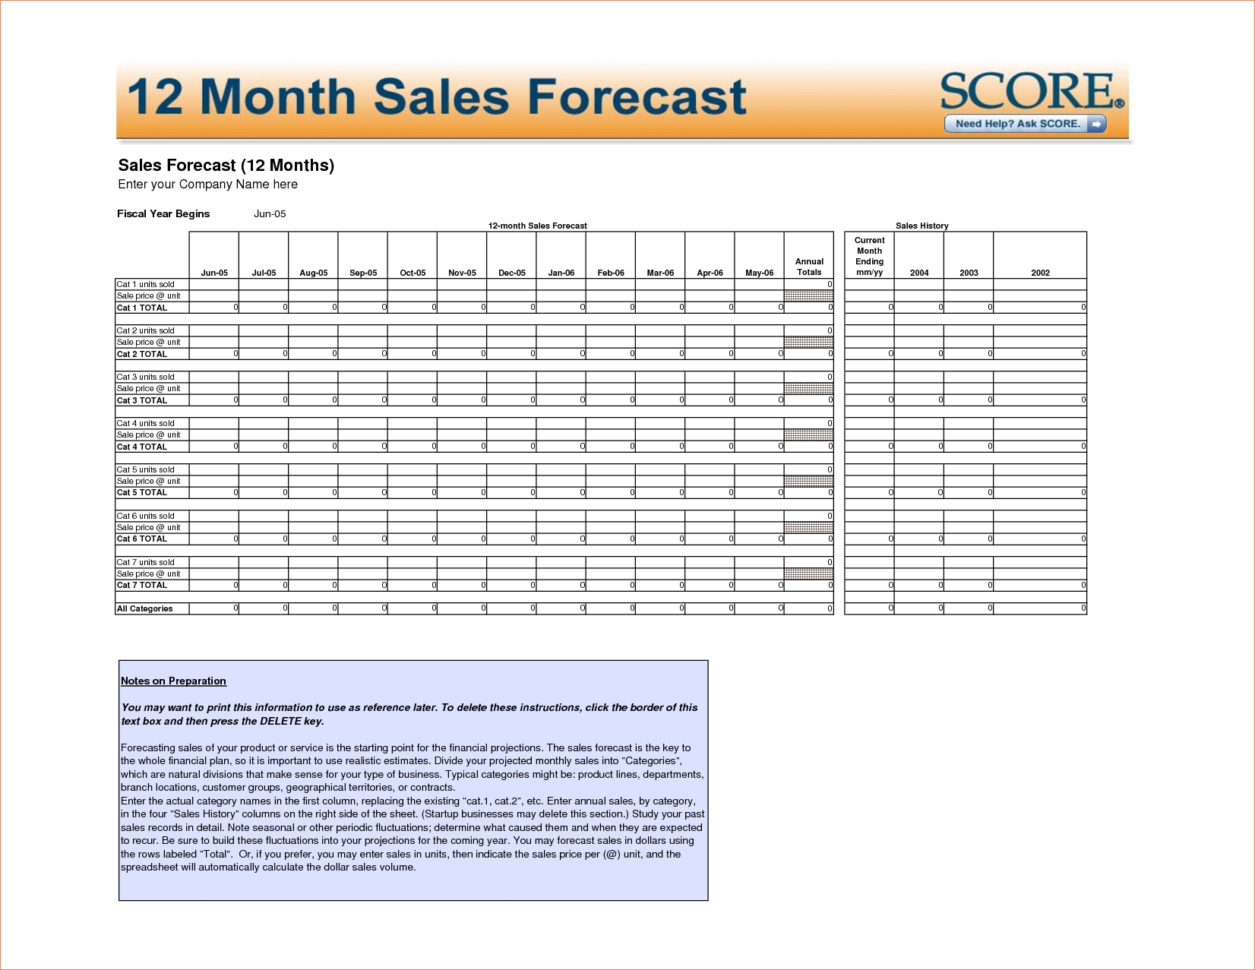 Score Sales Forecast Spreadsheet With Month Financial Projection Template Sales Forecast Spreadsheet